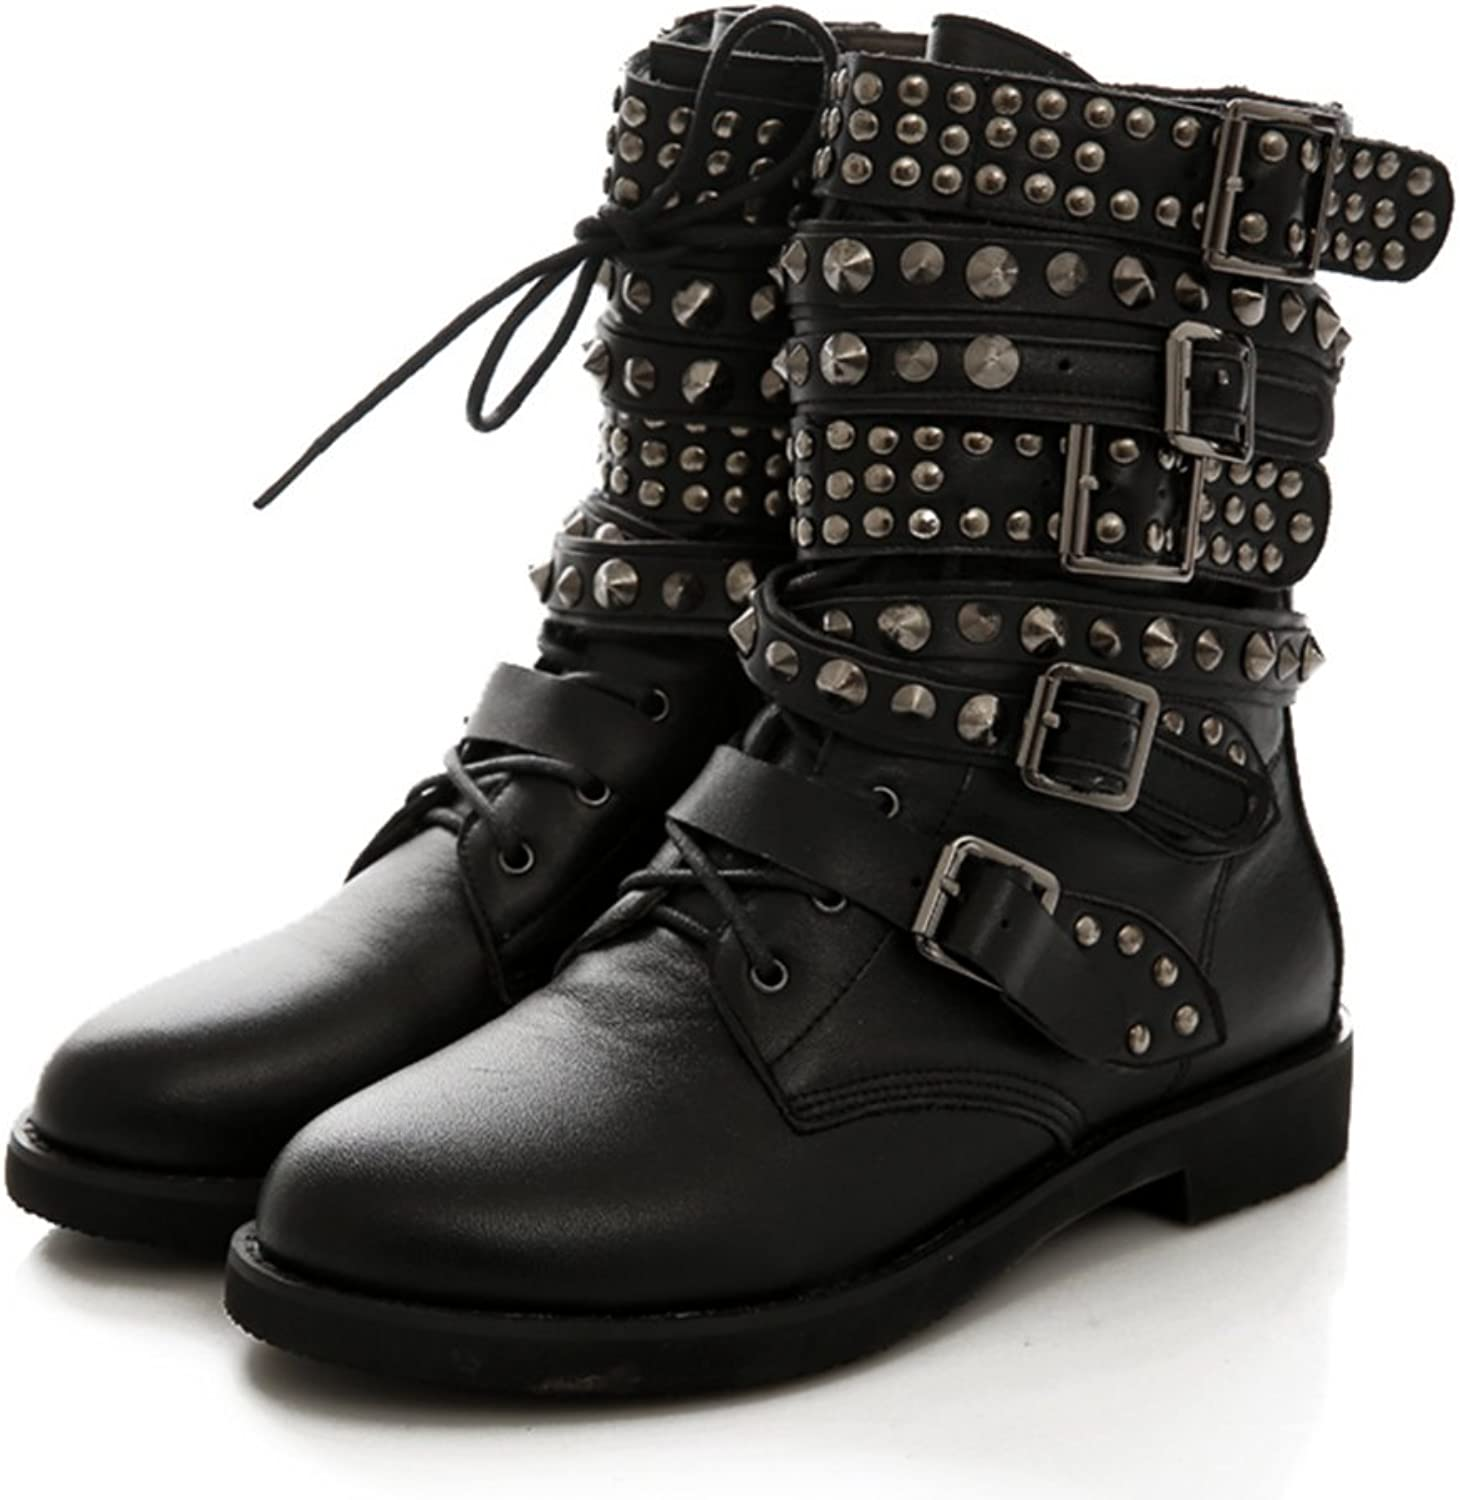 AIWEIYi Womens Rivets Round toe Buckles Flat Ankle Boots Black Booties